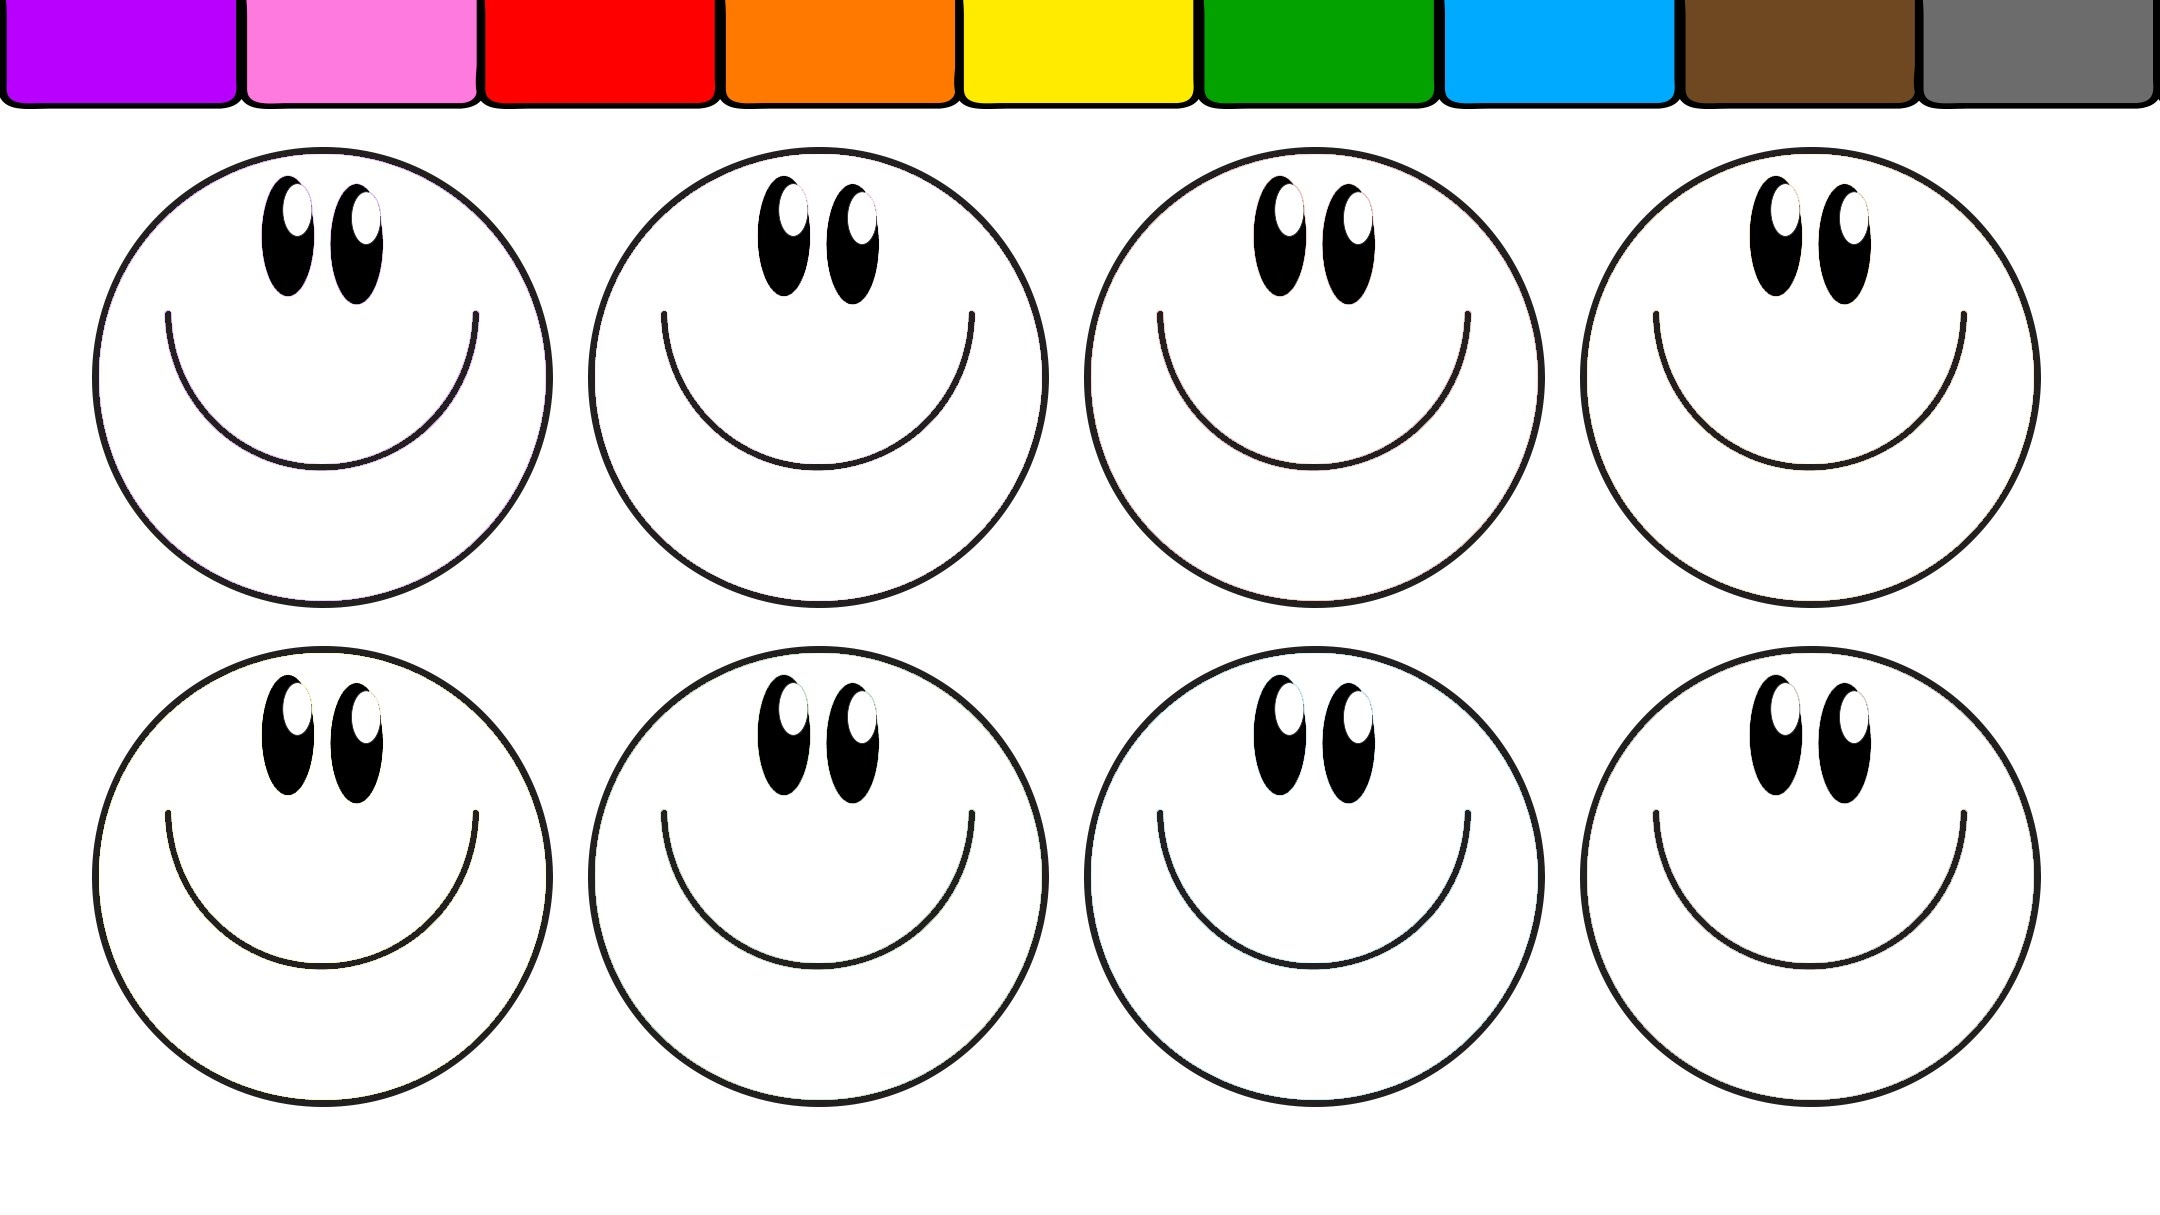 Smiley Face Coloring Page - Learn Colors for Kids and Color This Fun Smiley Face